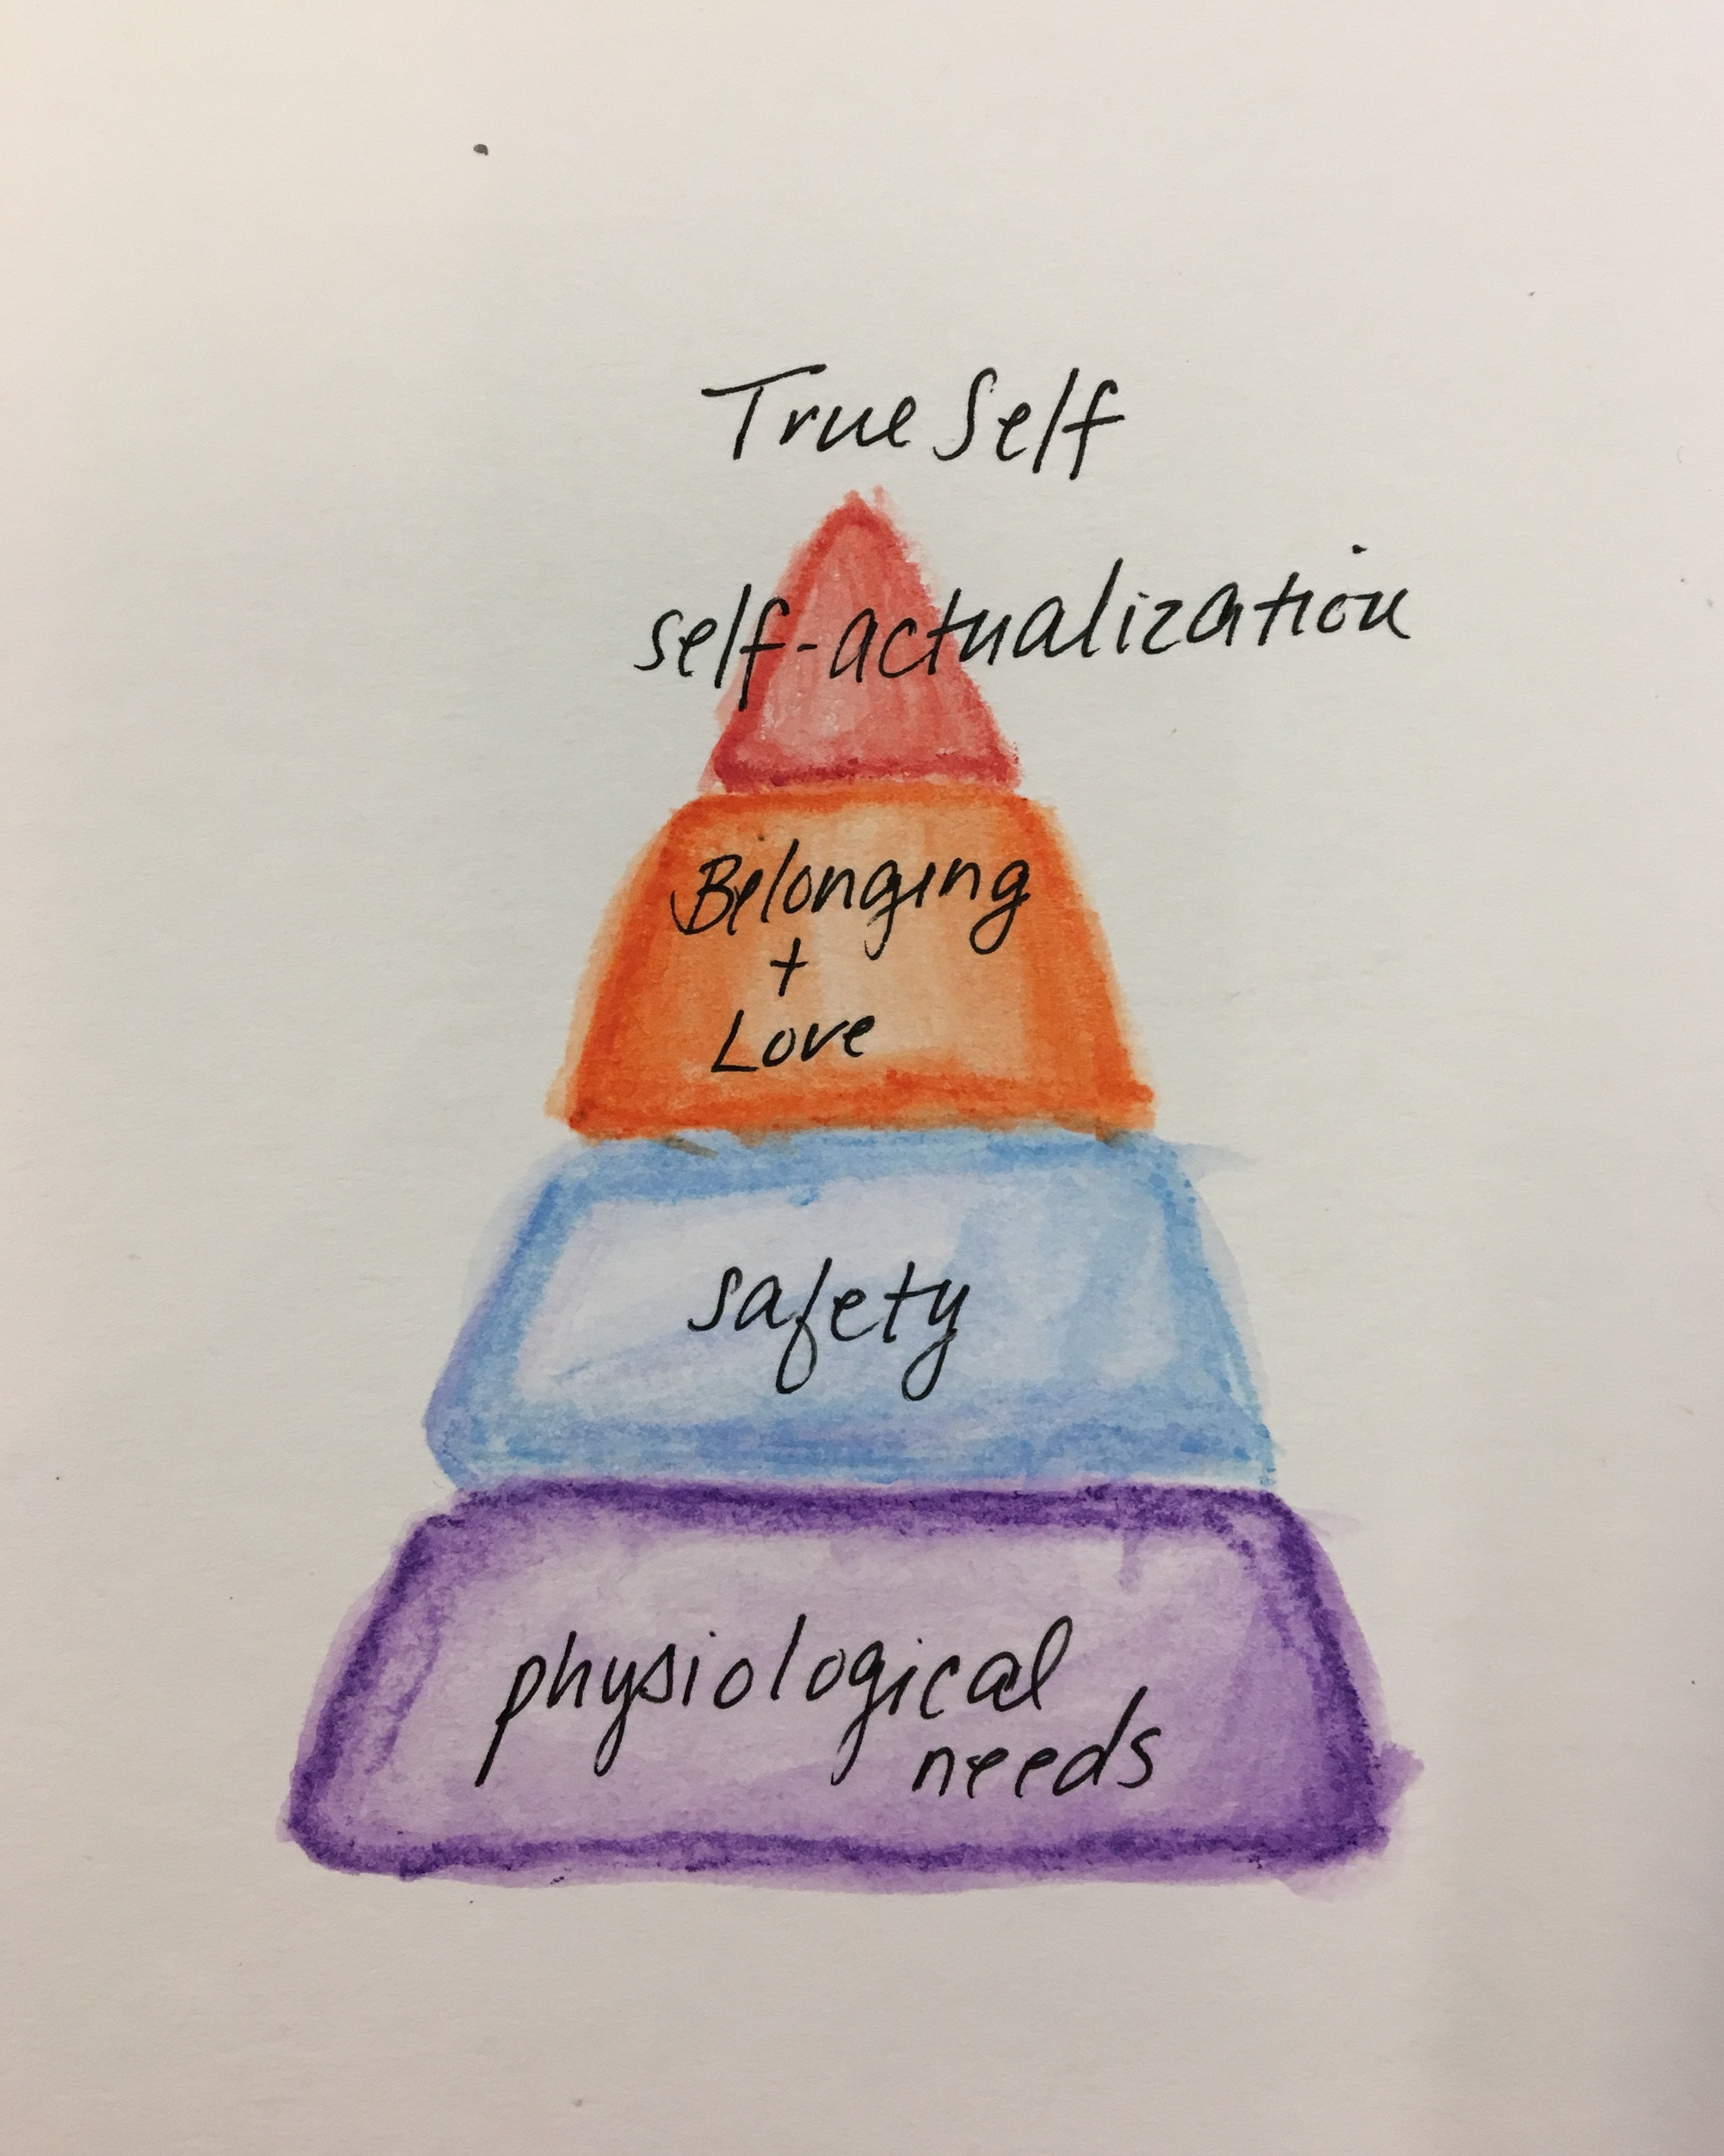 Maslow's Self-Actualization